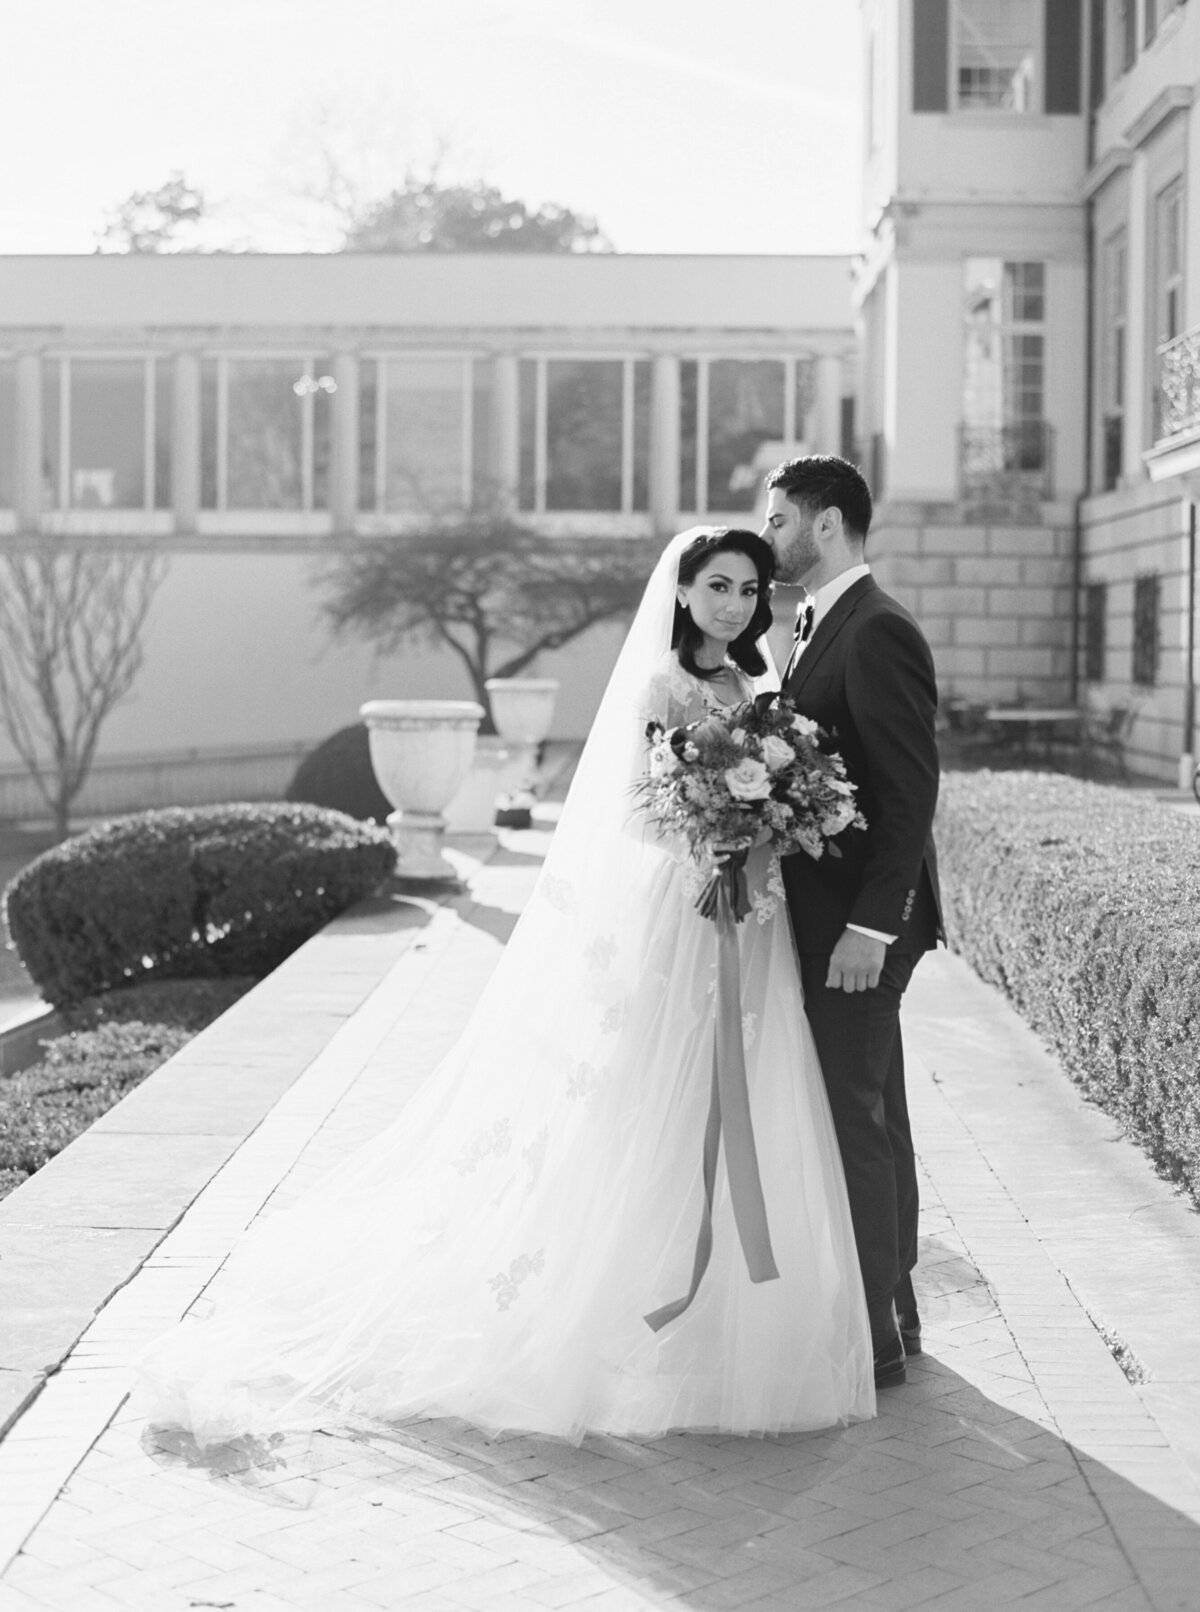 Kaylea Moreno_wedding gallery - Rami-Cassandra-Wedding-krmorenophoto-171